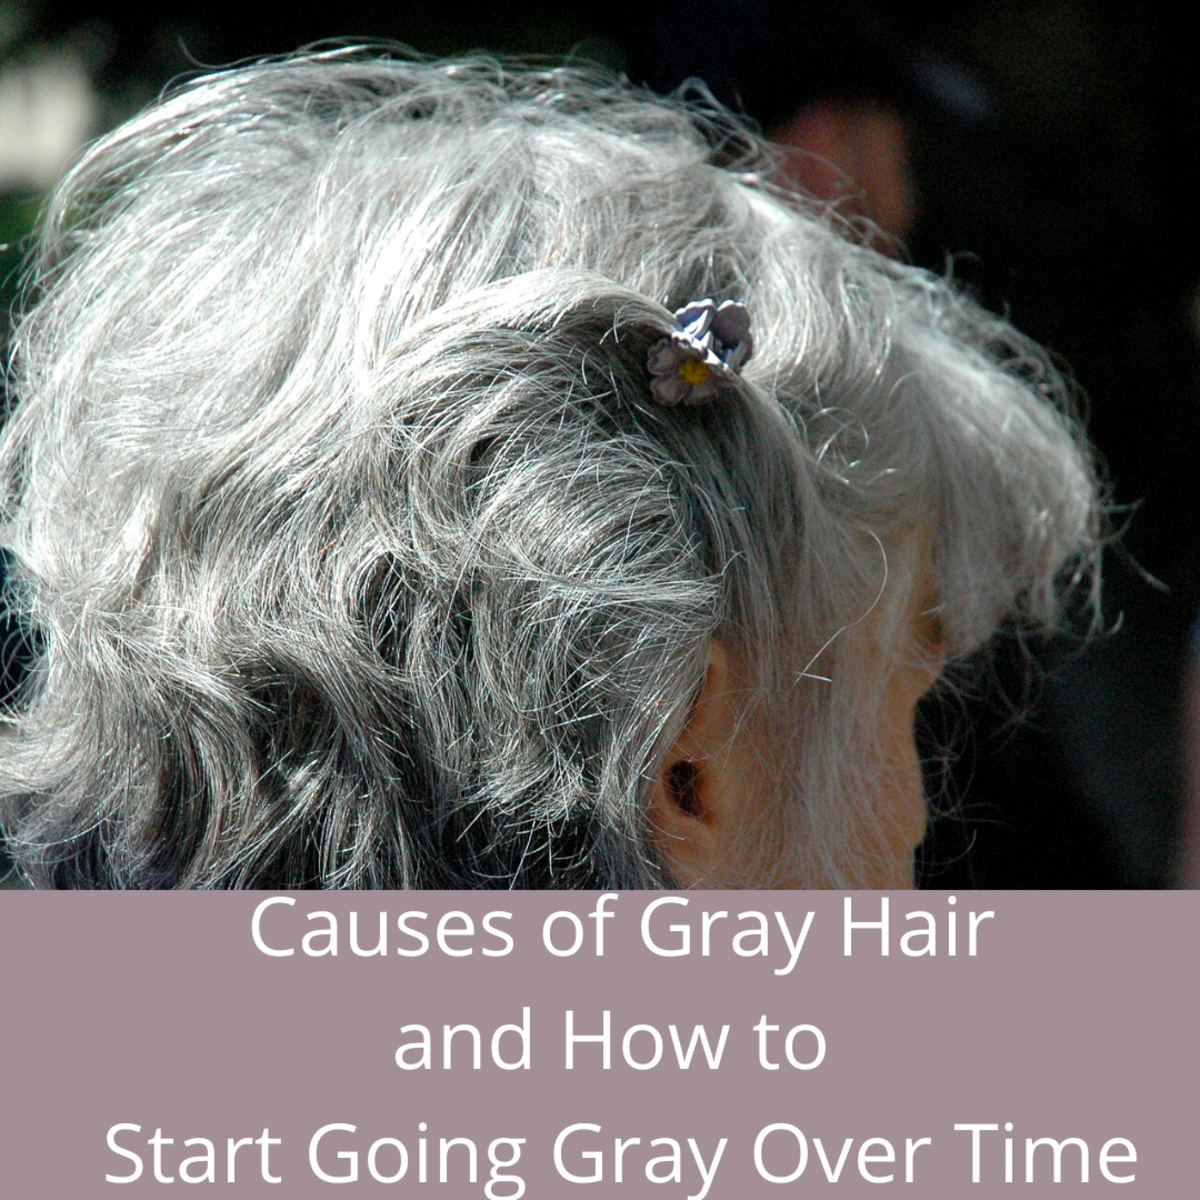 Causes of Gray Hair and How to Start Going Gray Over Time.